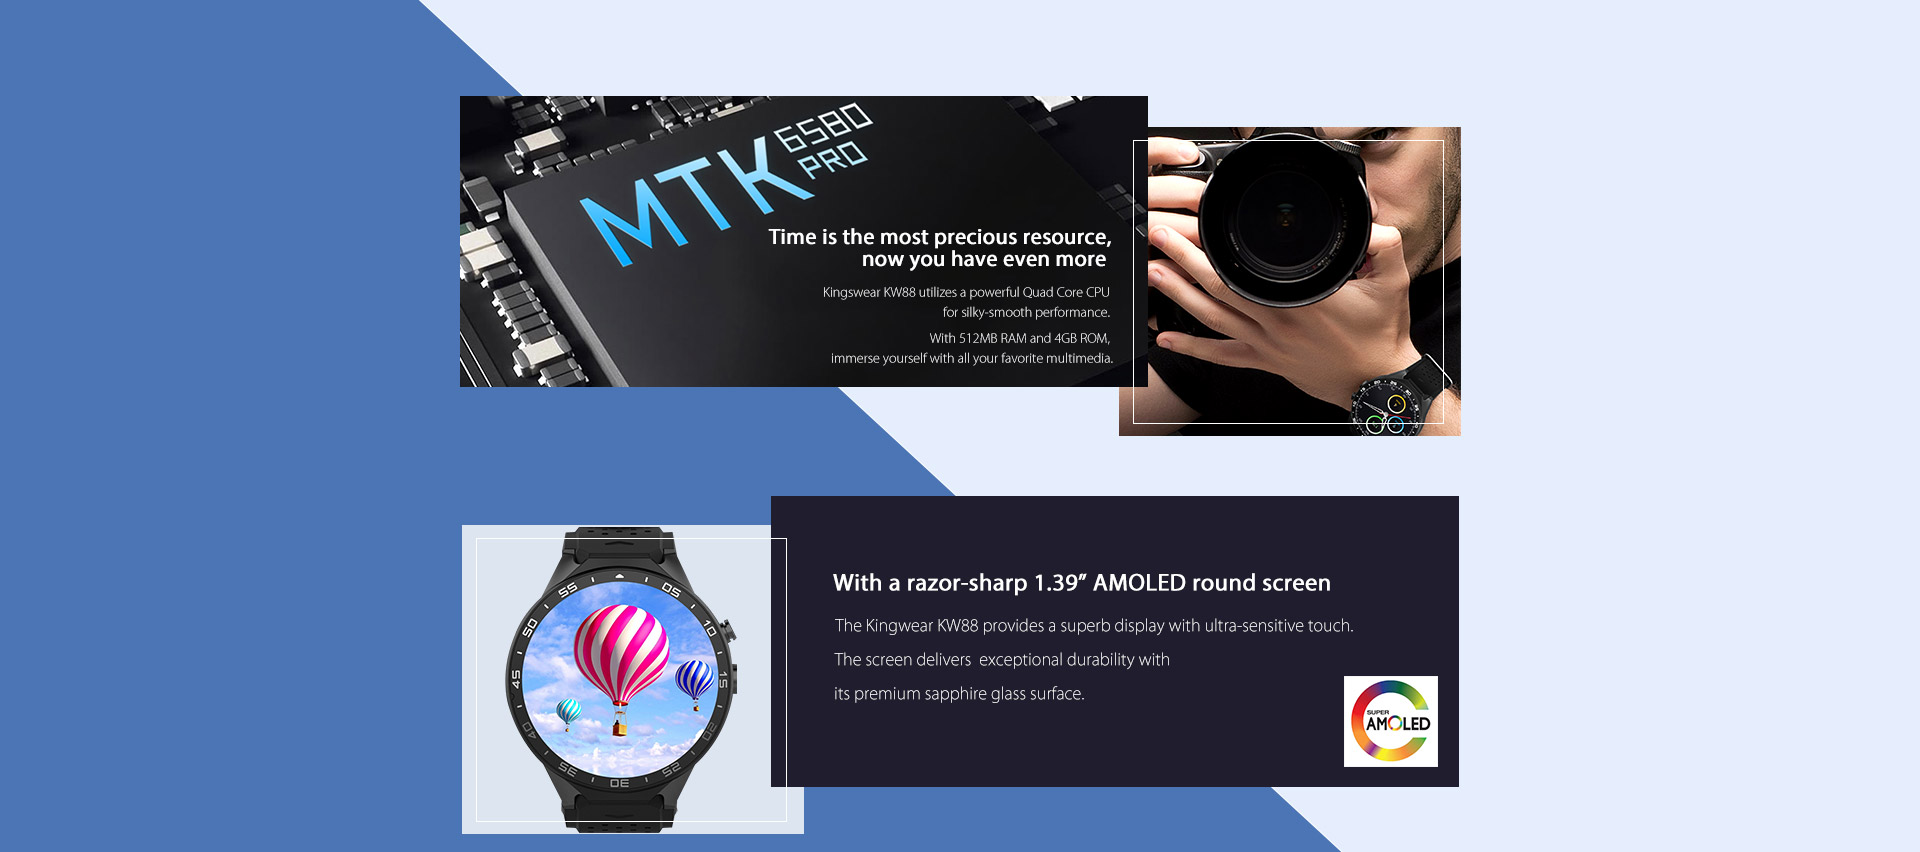 kingwear kw88 flagship smartwatch phone promotion at 99